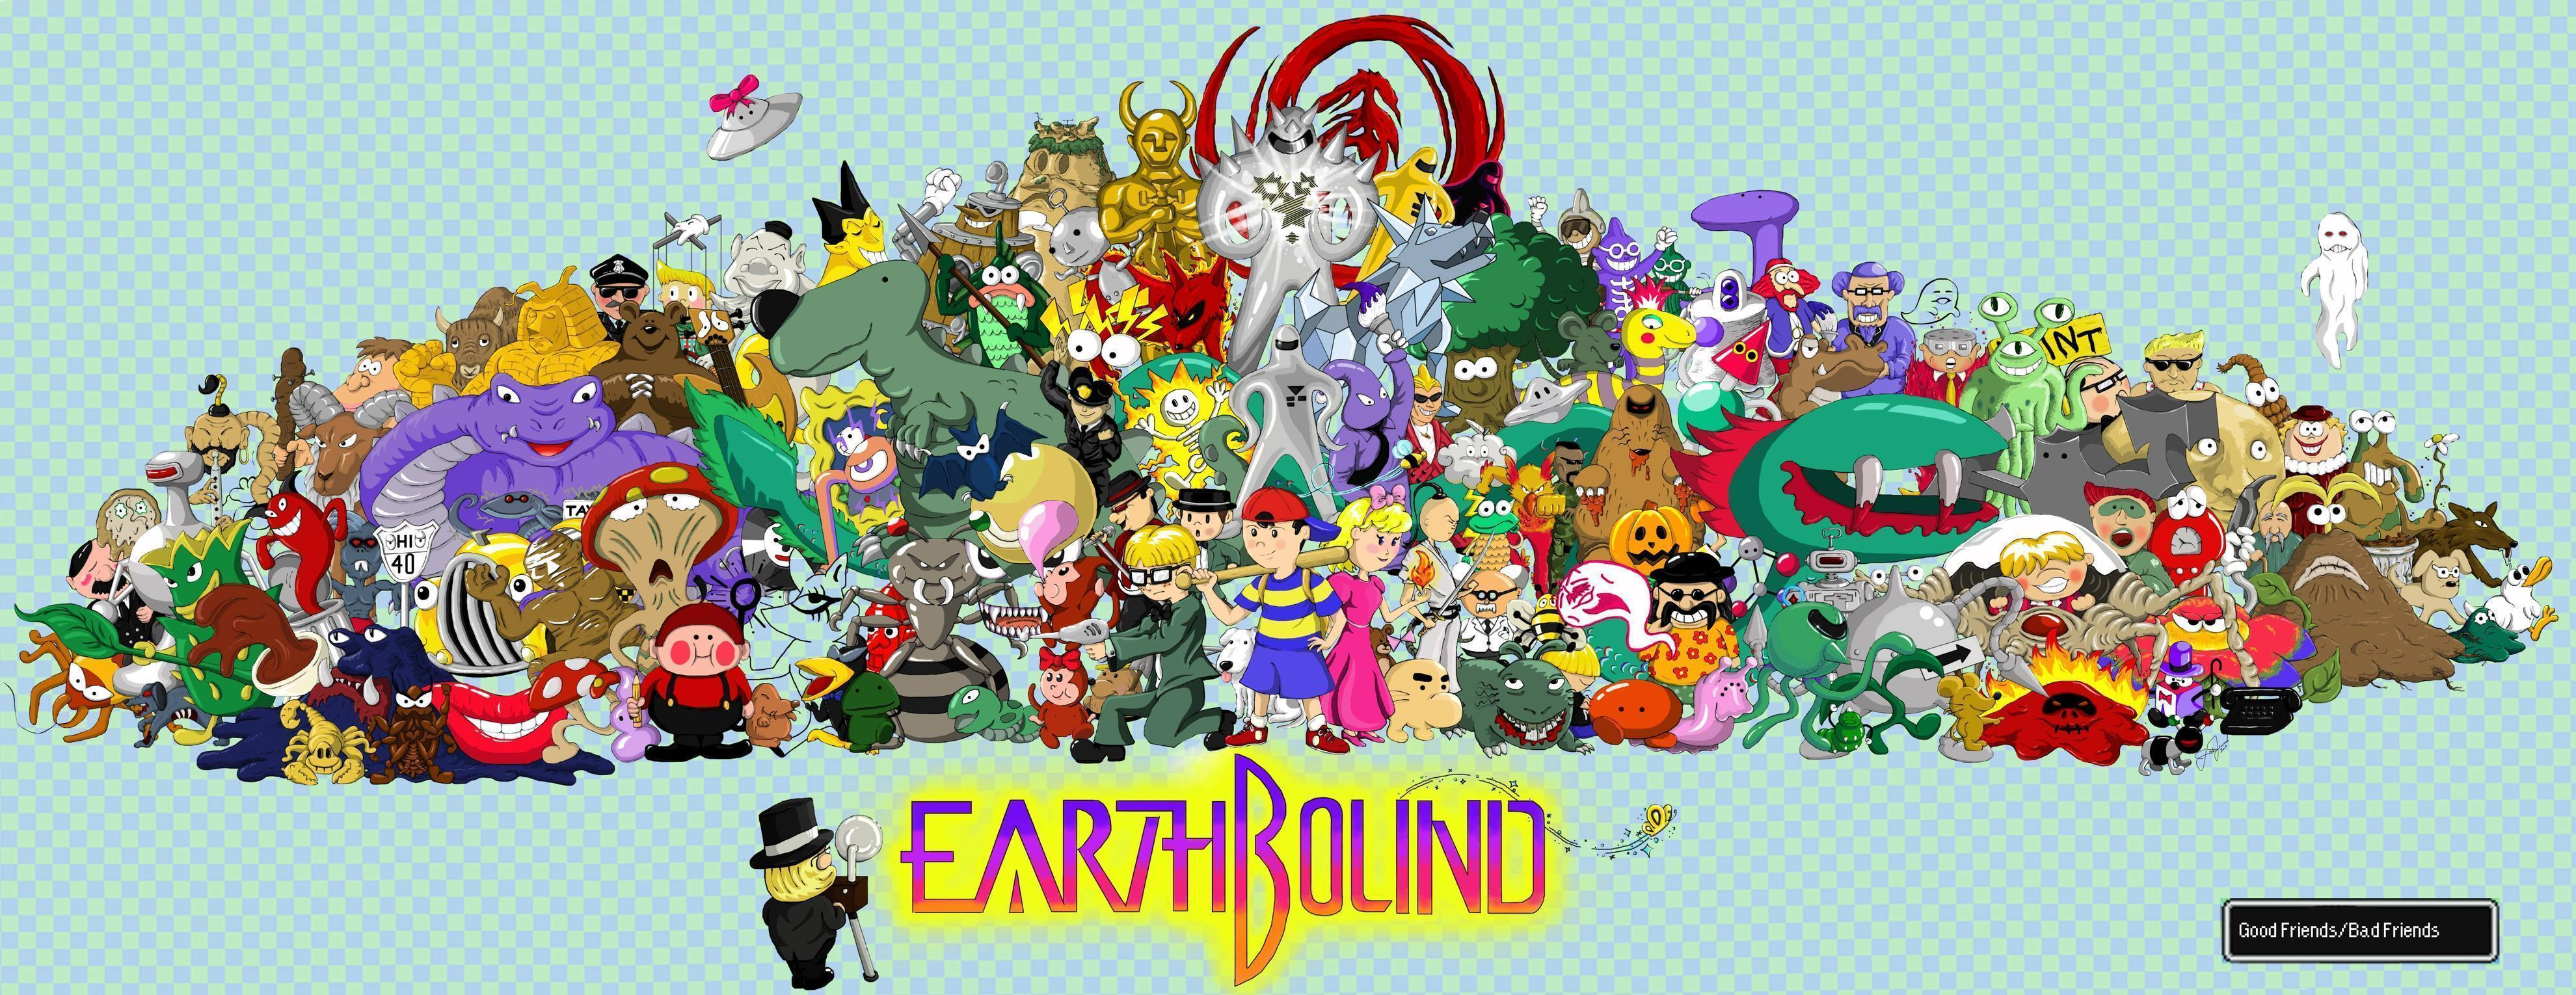 earthbound wallpaper